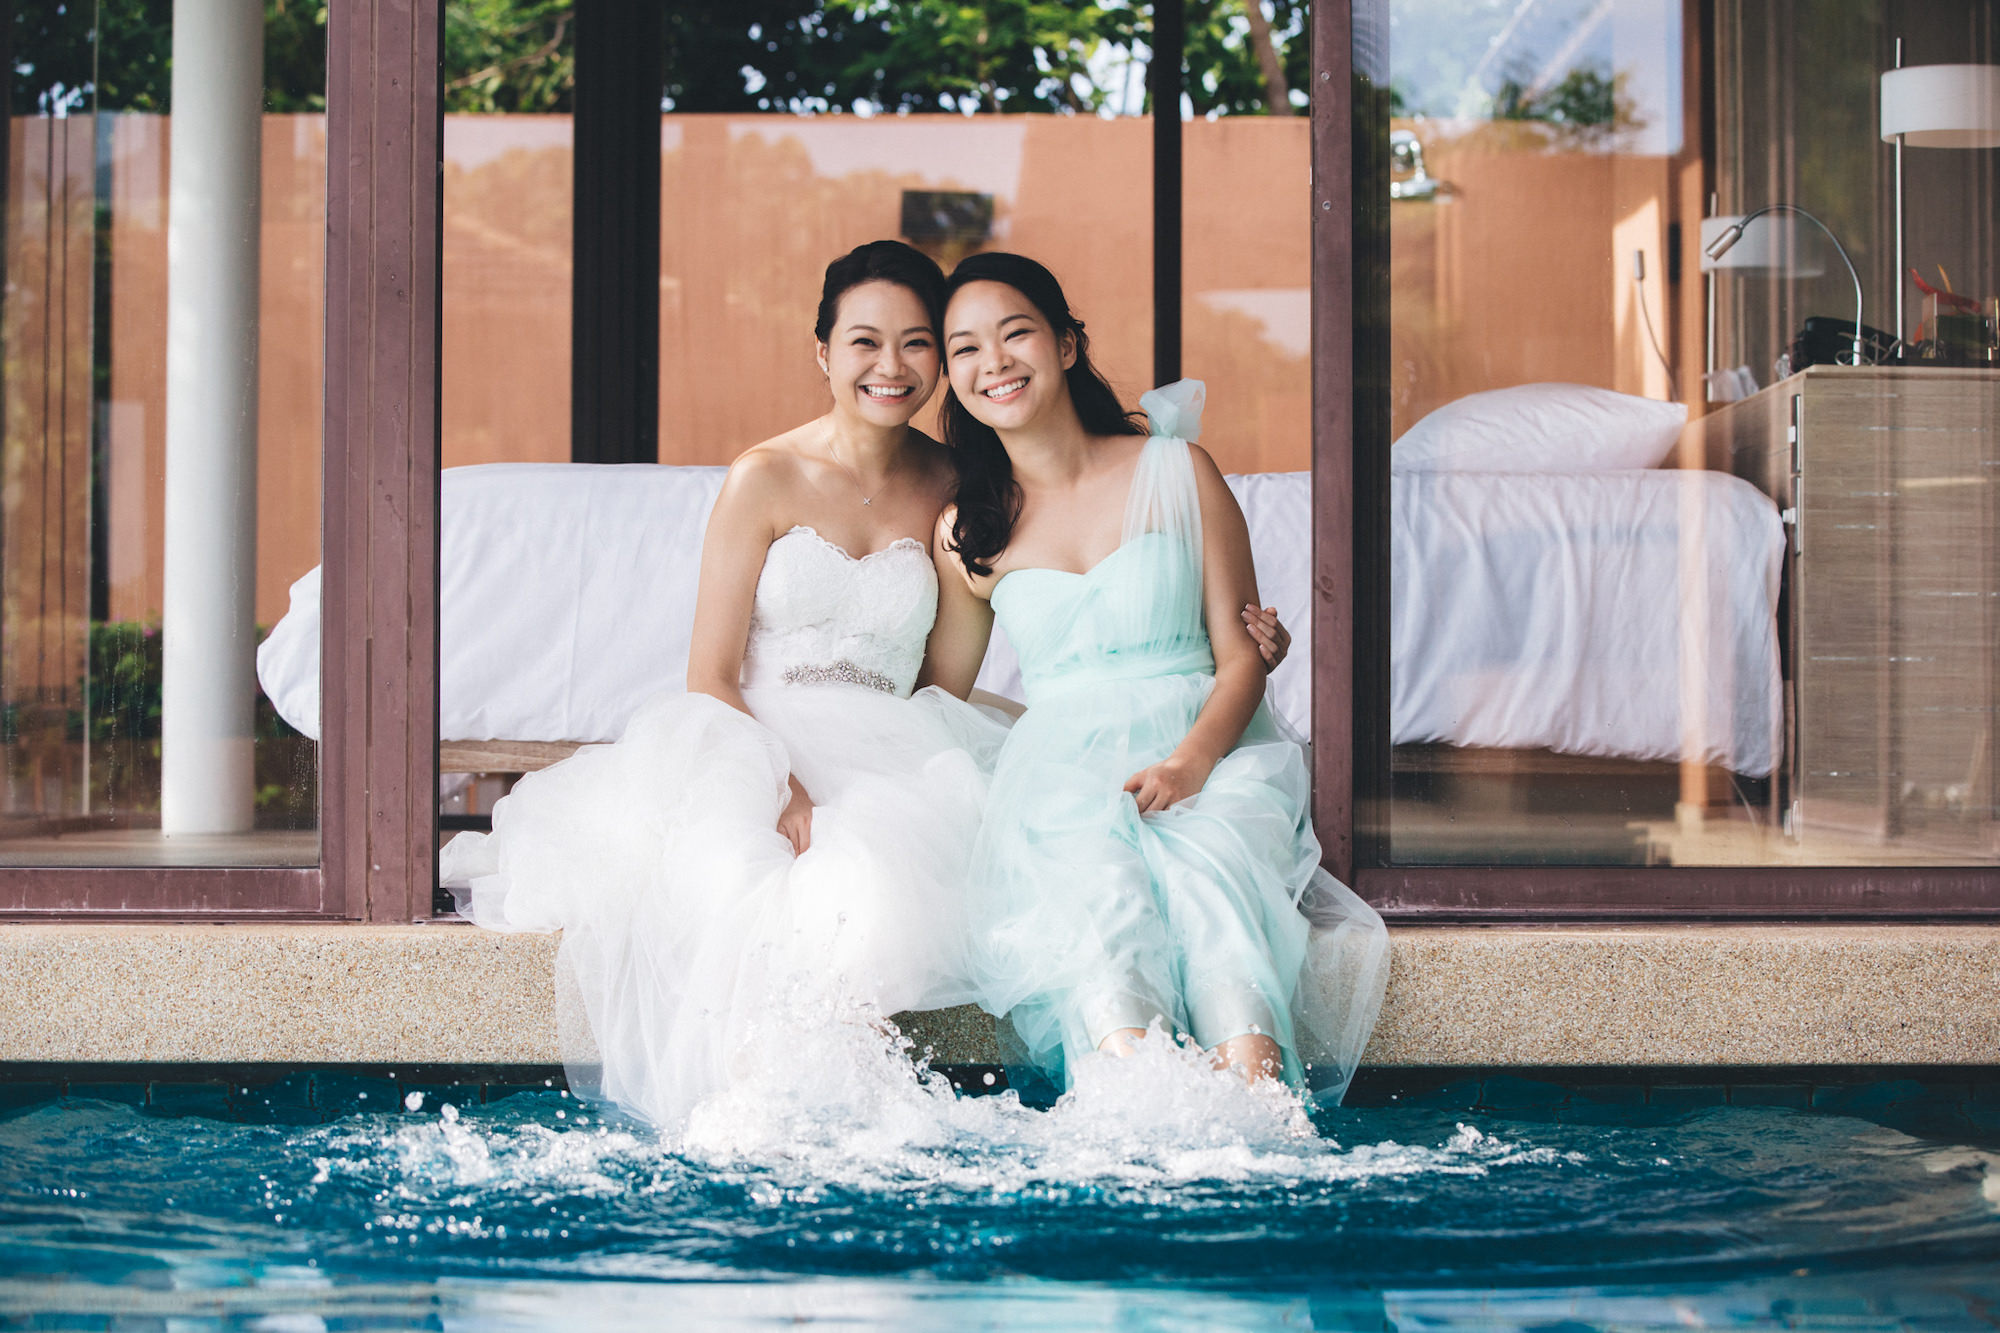 Catherine & Jackie - Phuket Wedding Photography 11.jpg